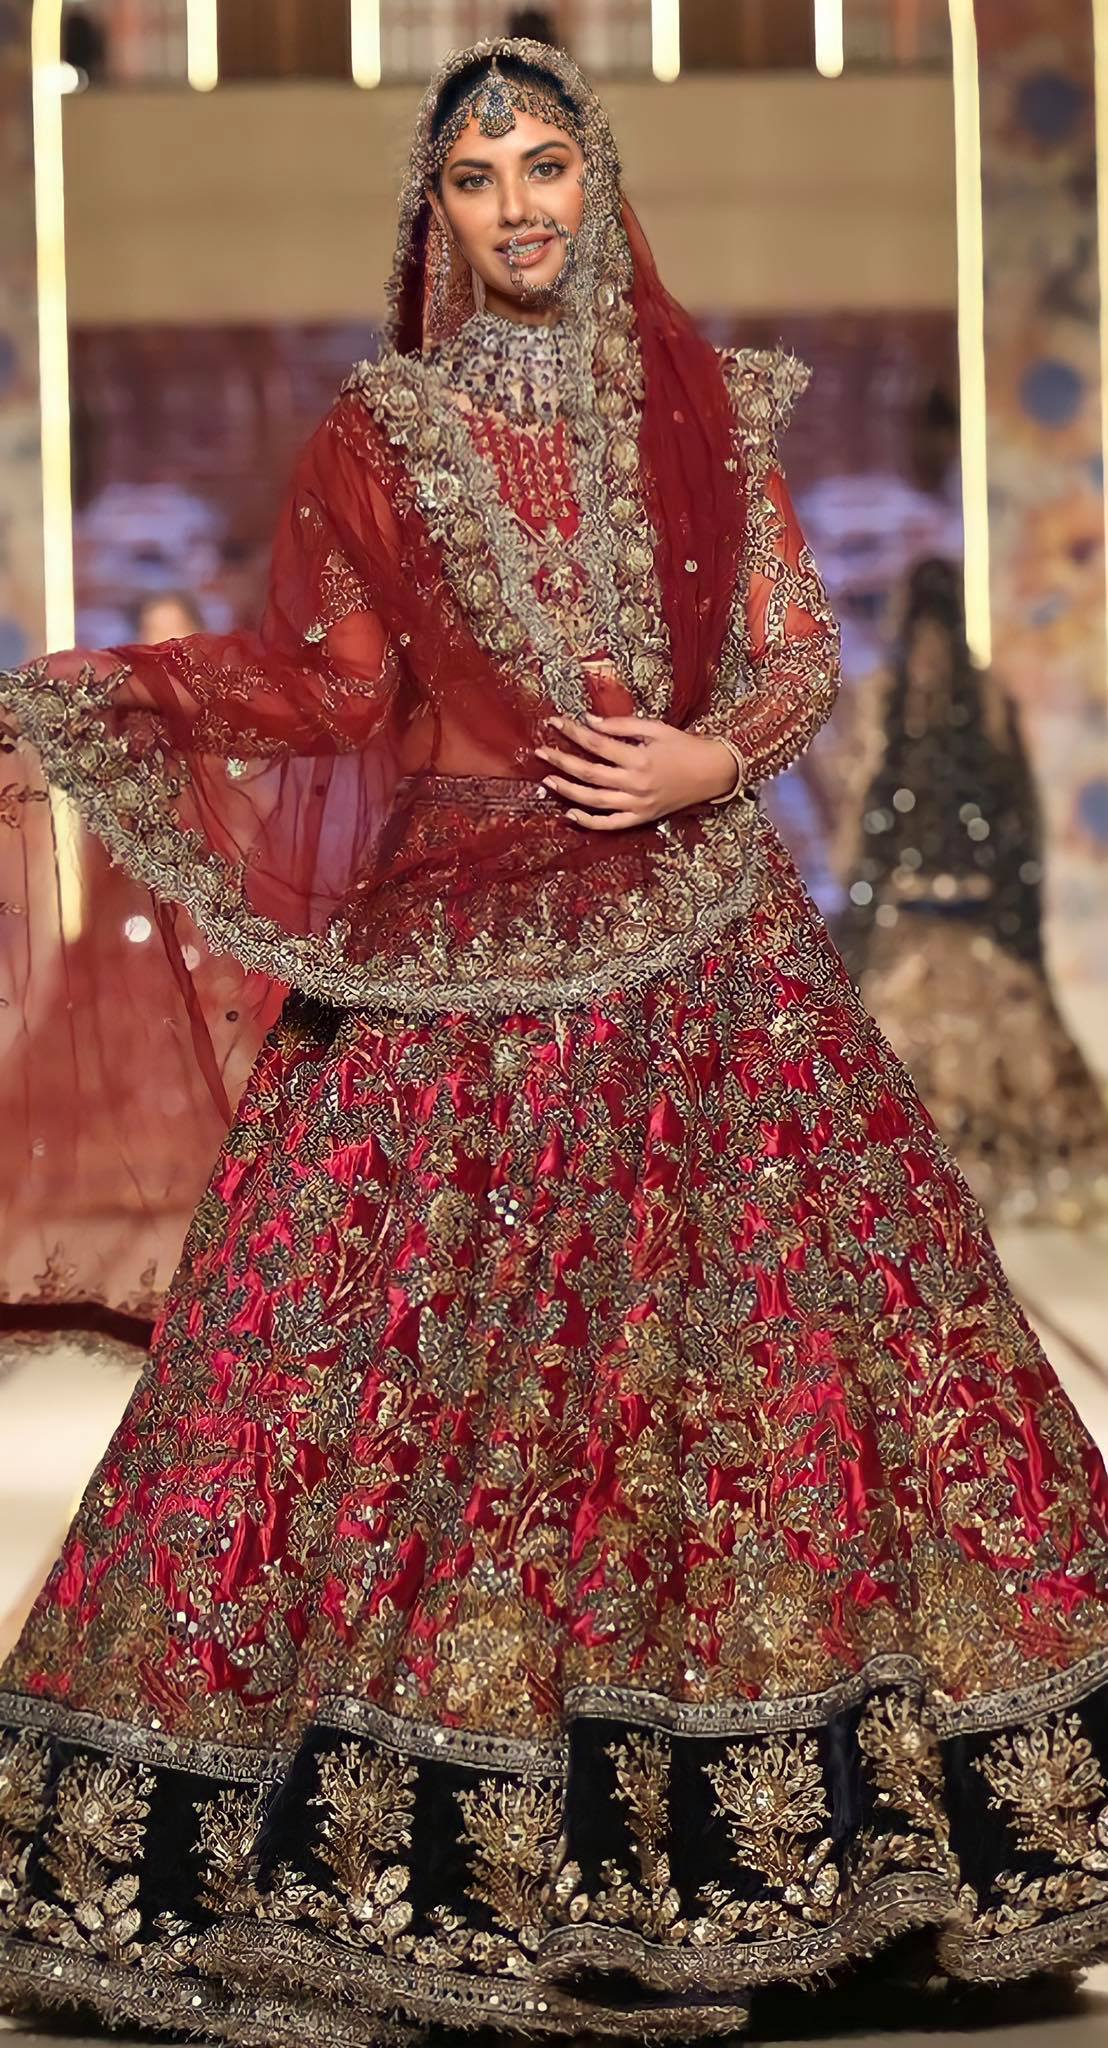 Best Bridal Looks From Bridal Couture Week 2021